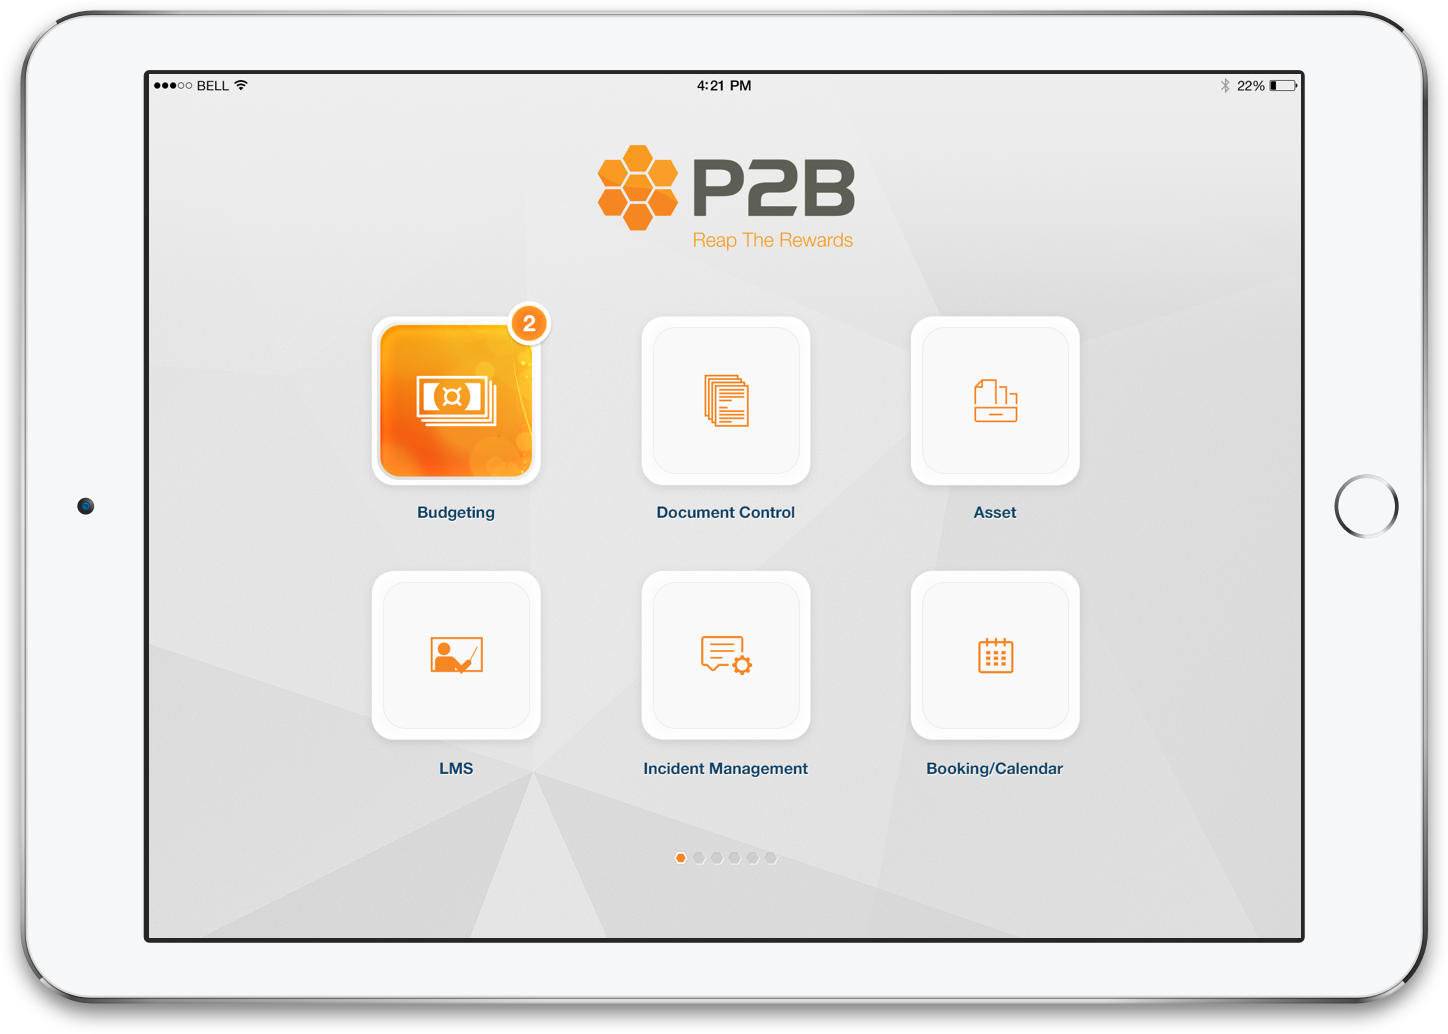 P2B Case Study | A SaaS-based App for Oil & Gas Industry